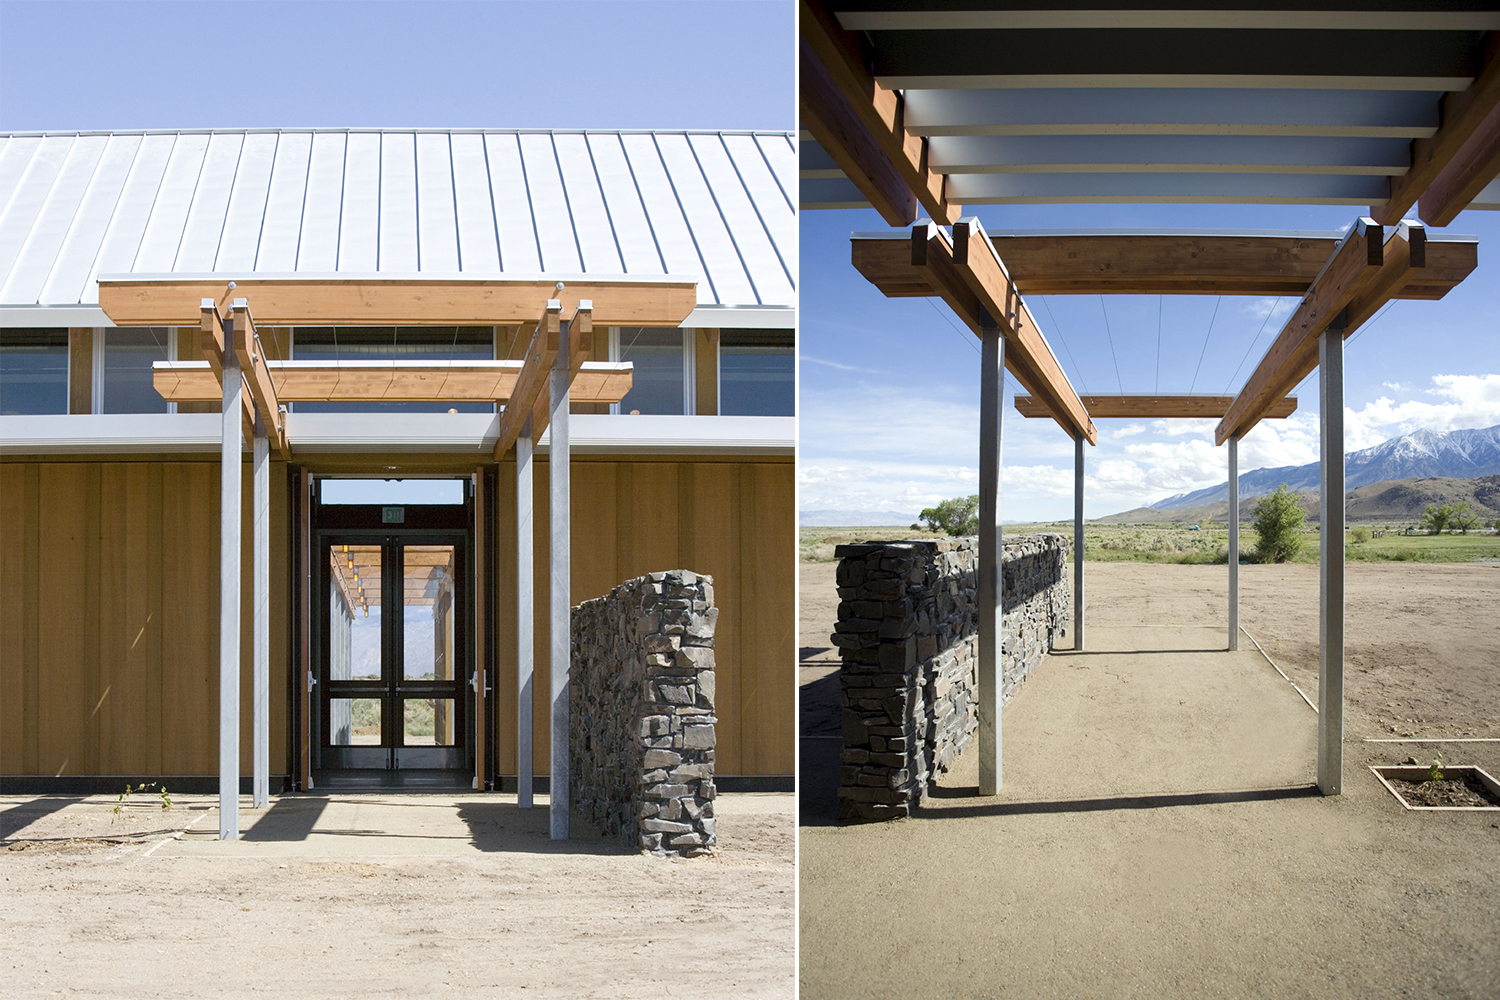 13_Projects_Eastern Sierra Inter-Agency Visitor Center.jpg